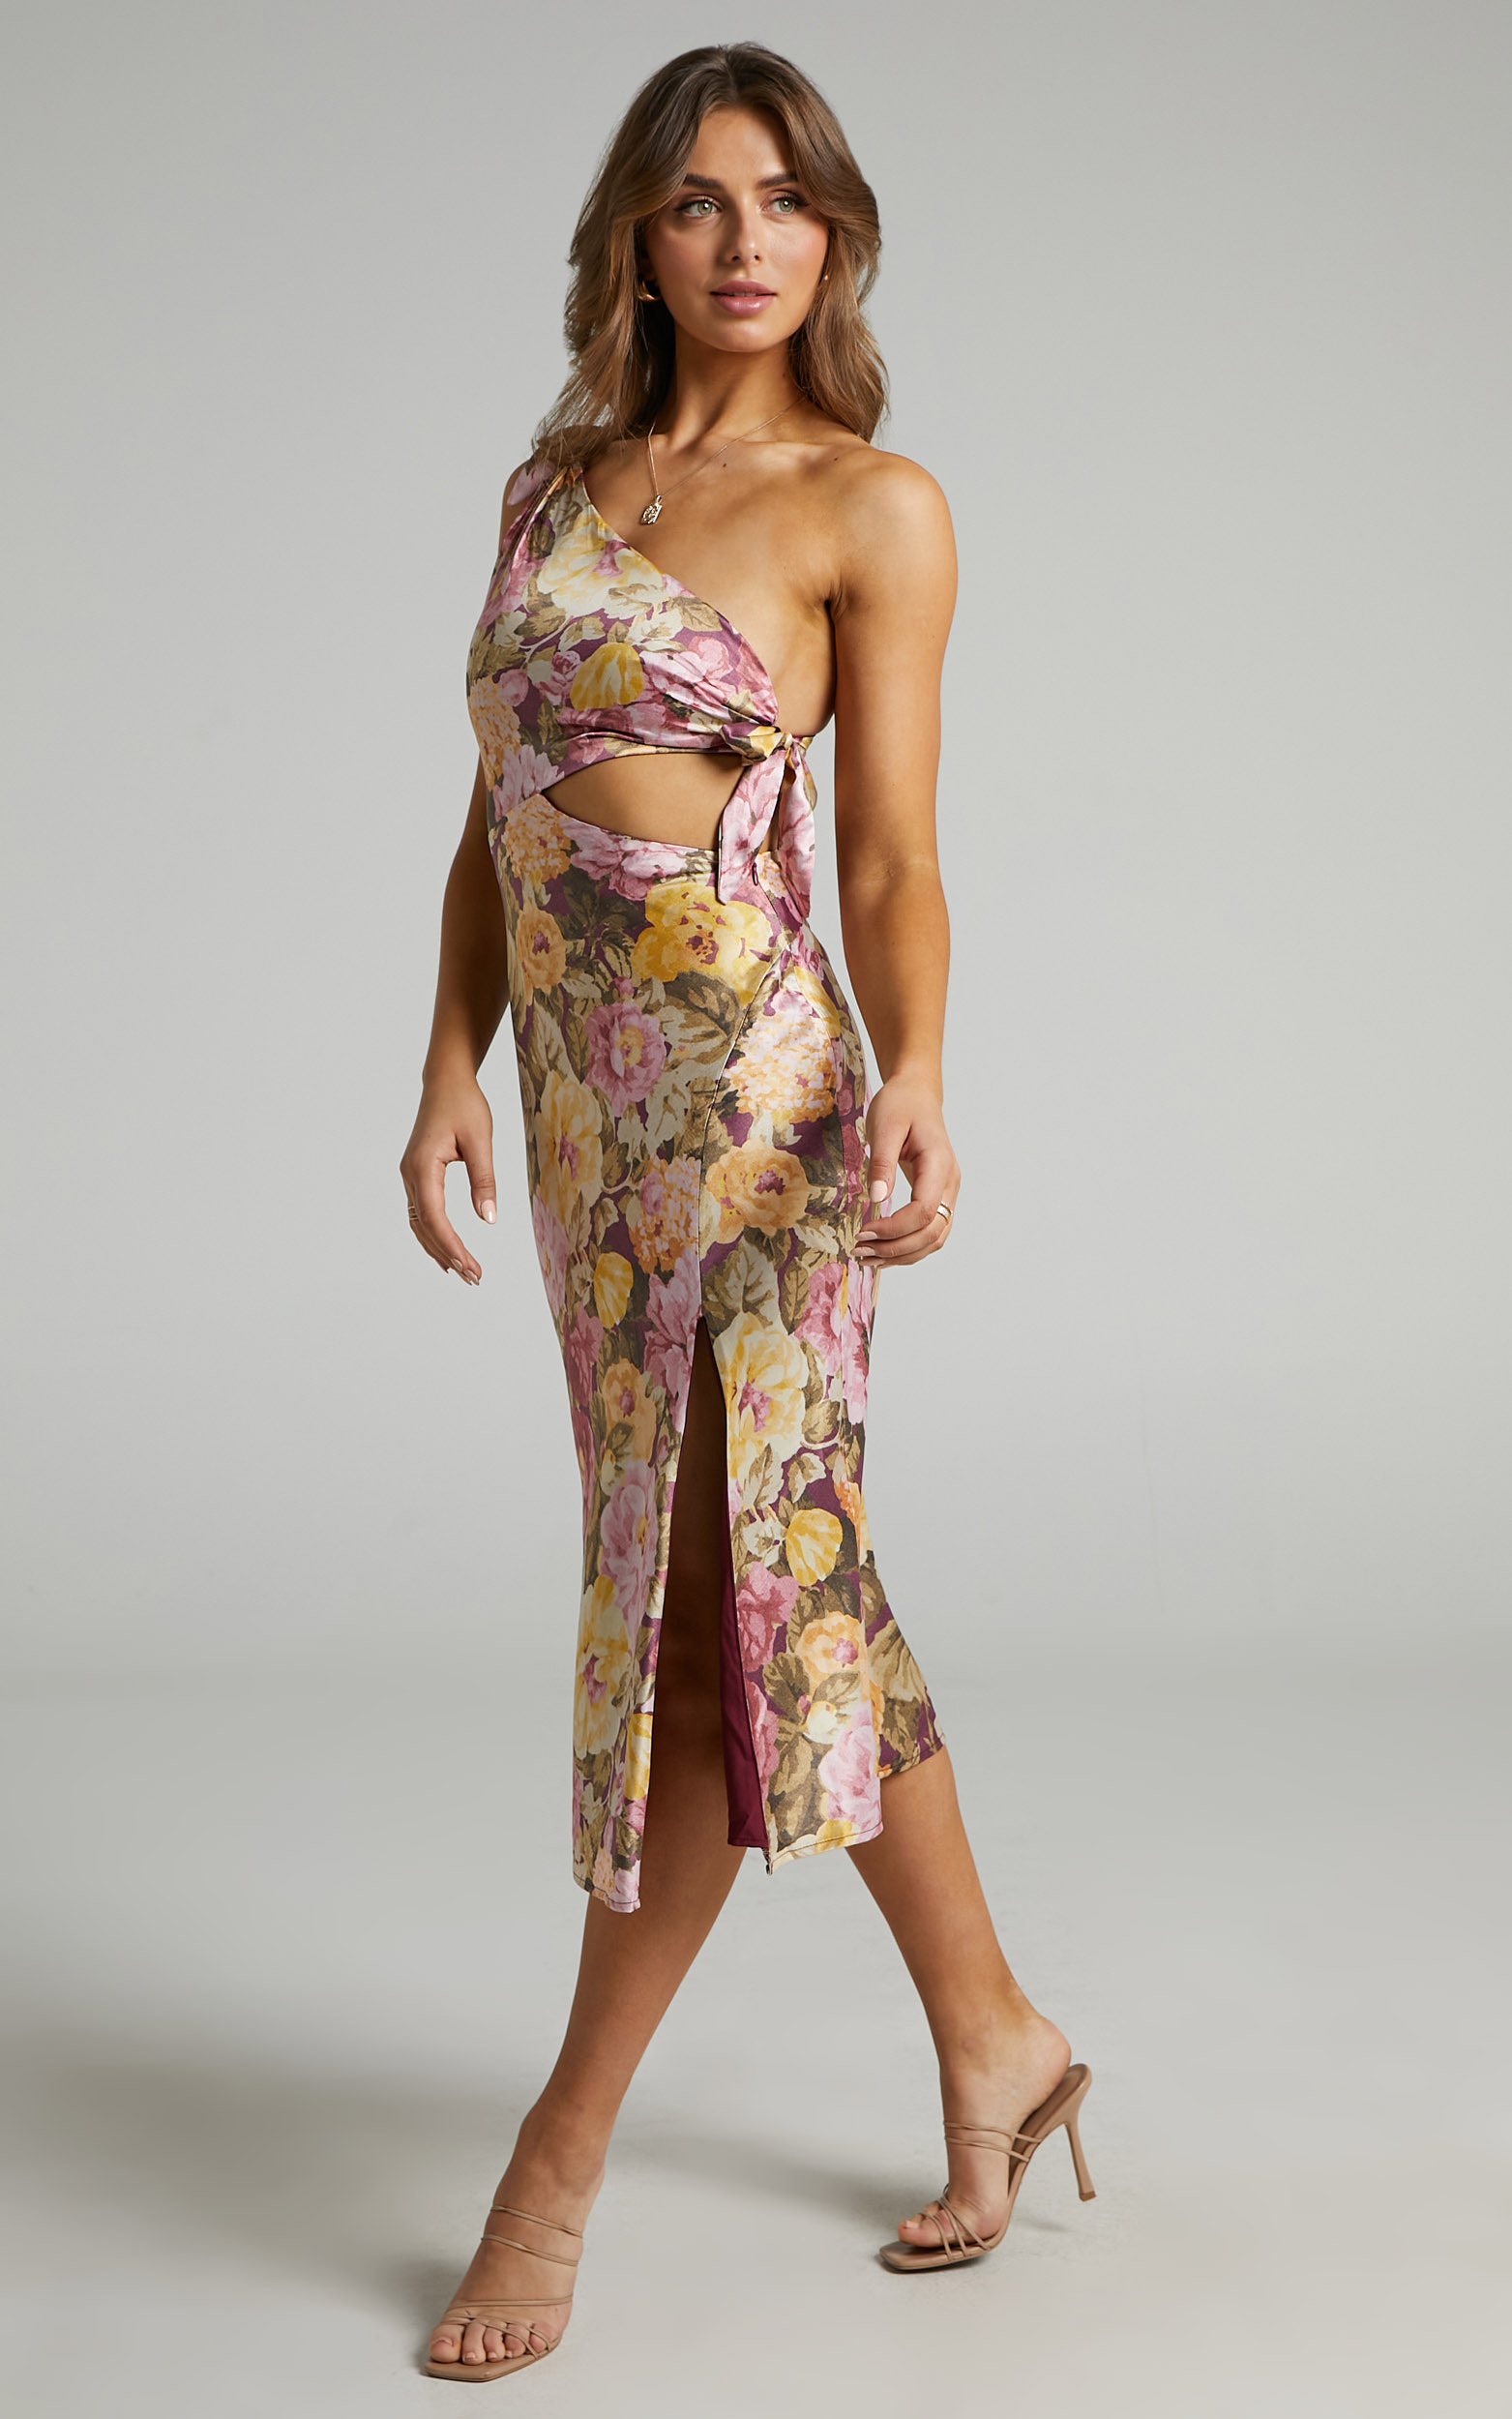 Glaucus Dress in Classic Floral - 06, PNK1, hi-res image number null